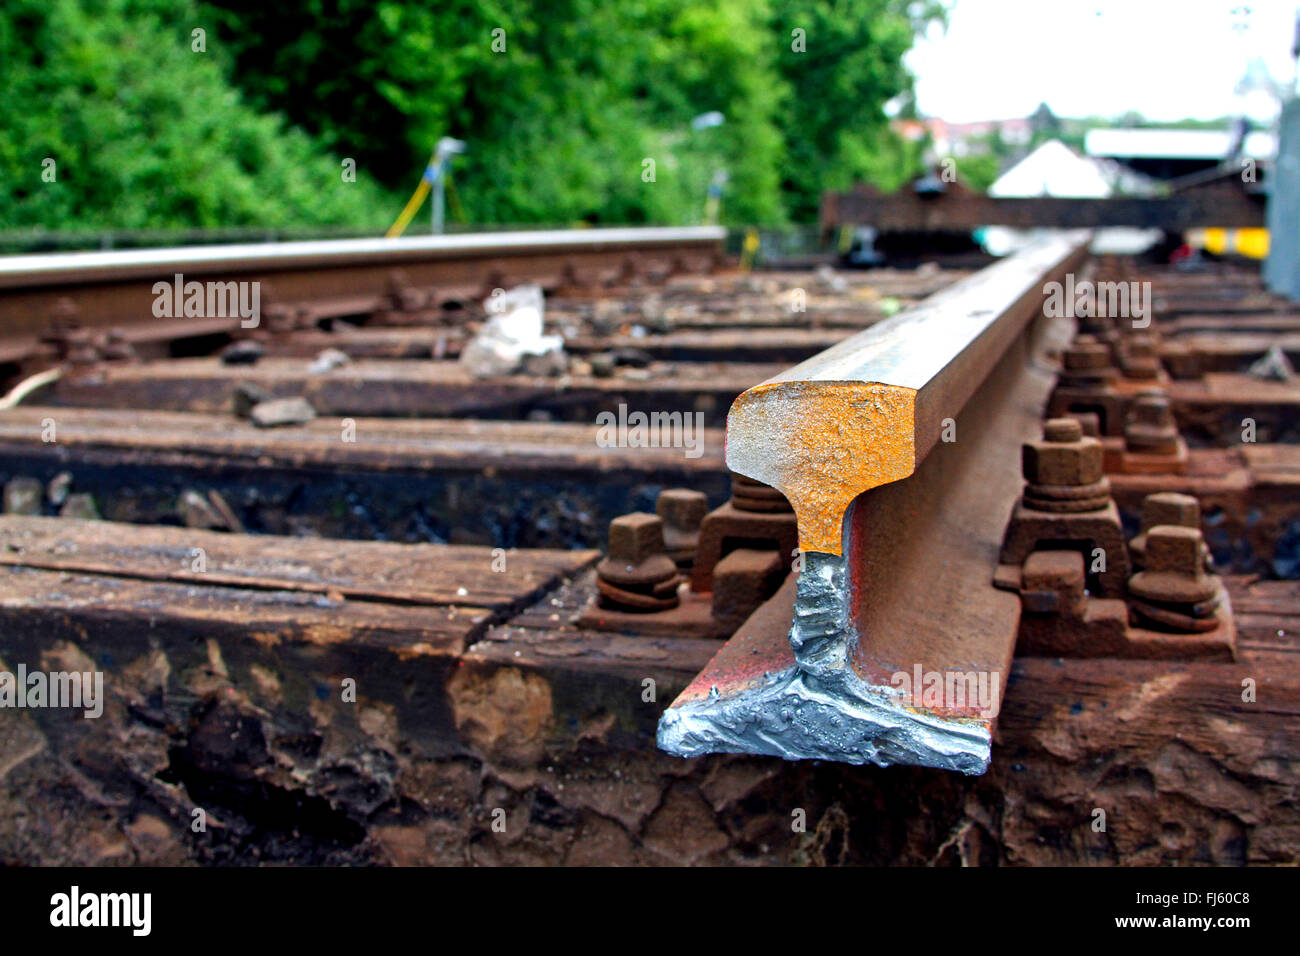 Railroad Track Stock Photos & Railroad Track Stock Images